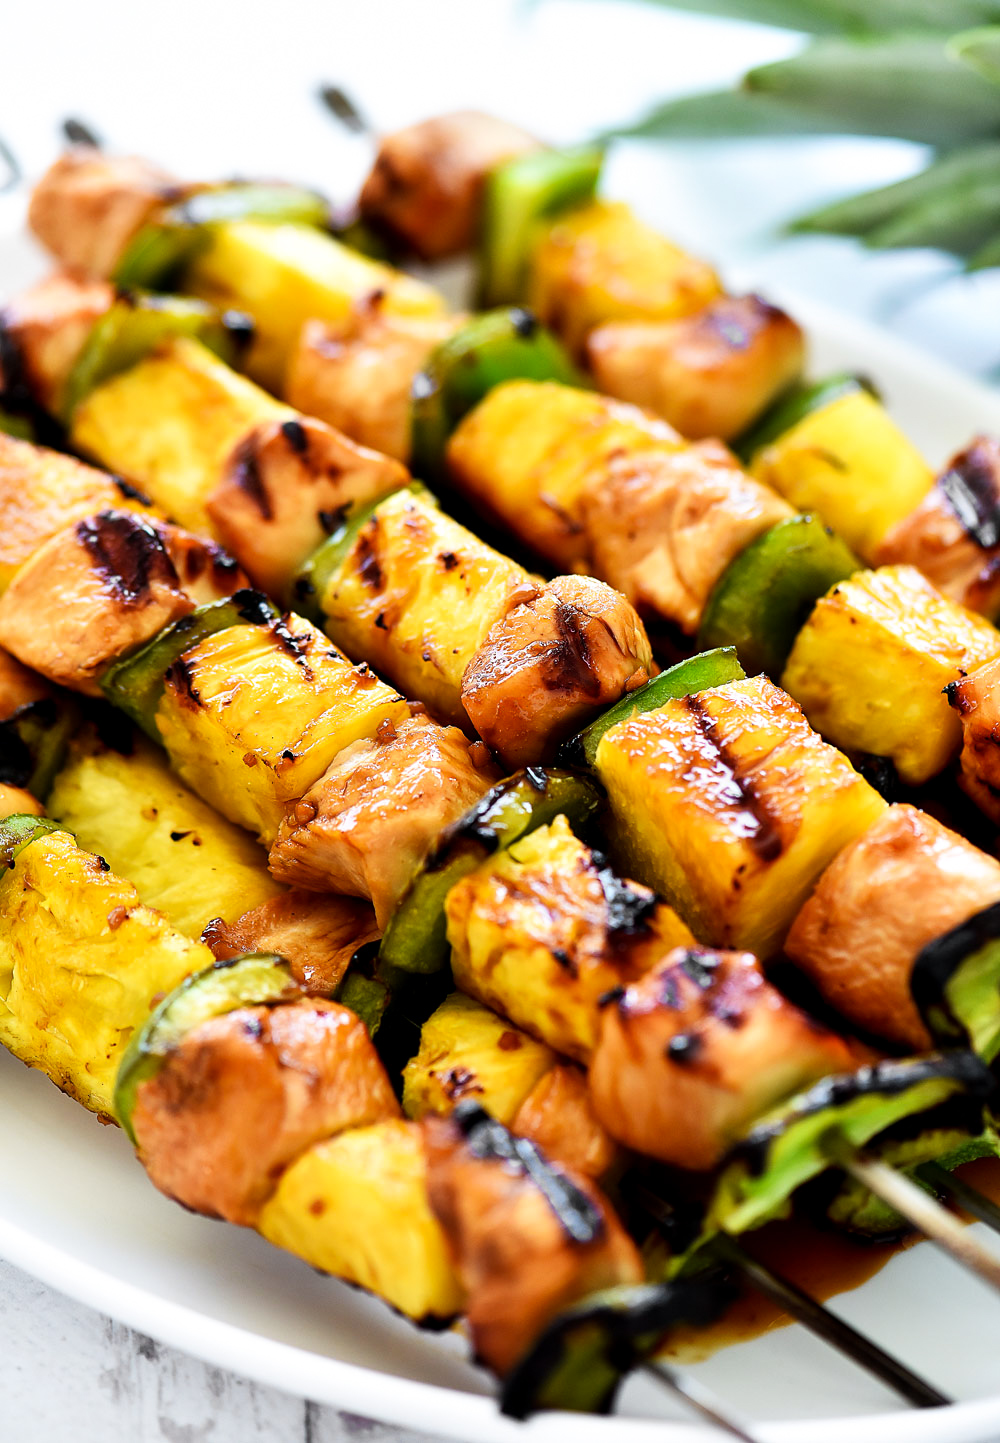 Teriyaki Chicken Kebabs are marinated pieces of chicken, with pineapple and bell pepper threaded onto skewers then grilled.